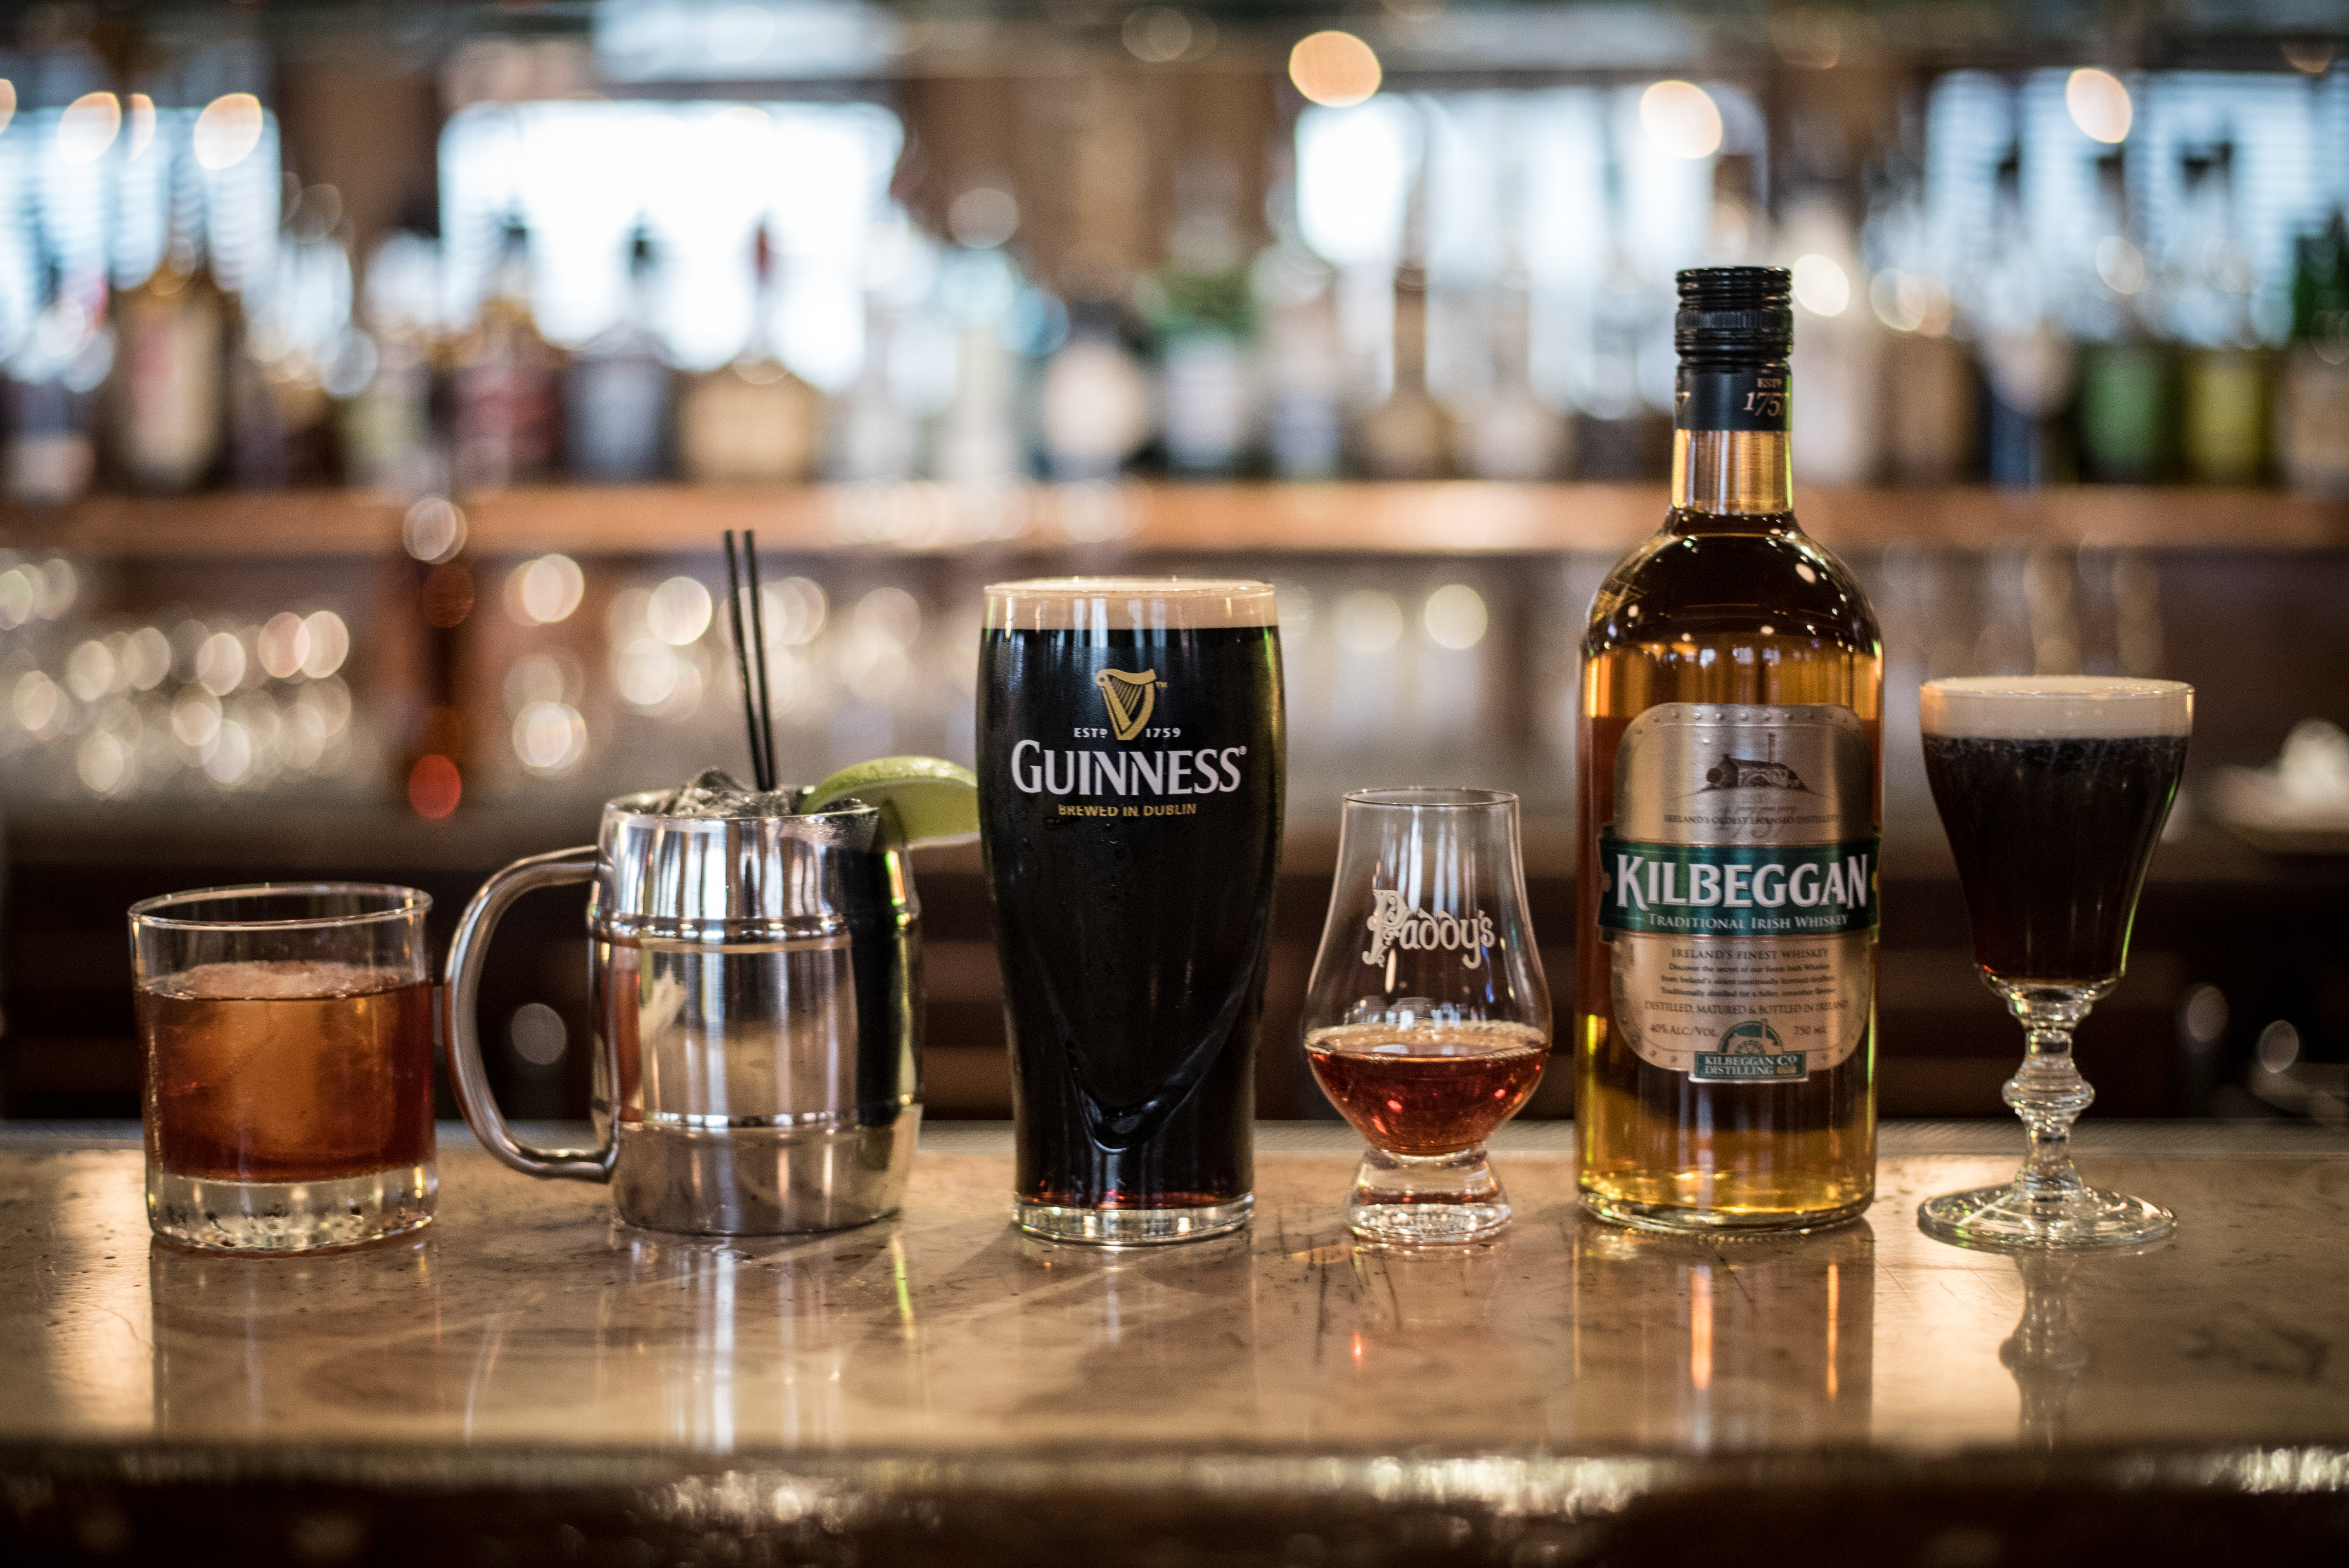 image of Guinness and Kilbeggan at Paddy's St. Patrick's Day Celebration courtesy of Brady Kennedy